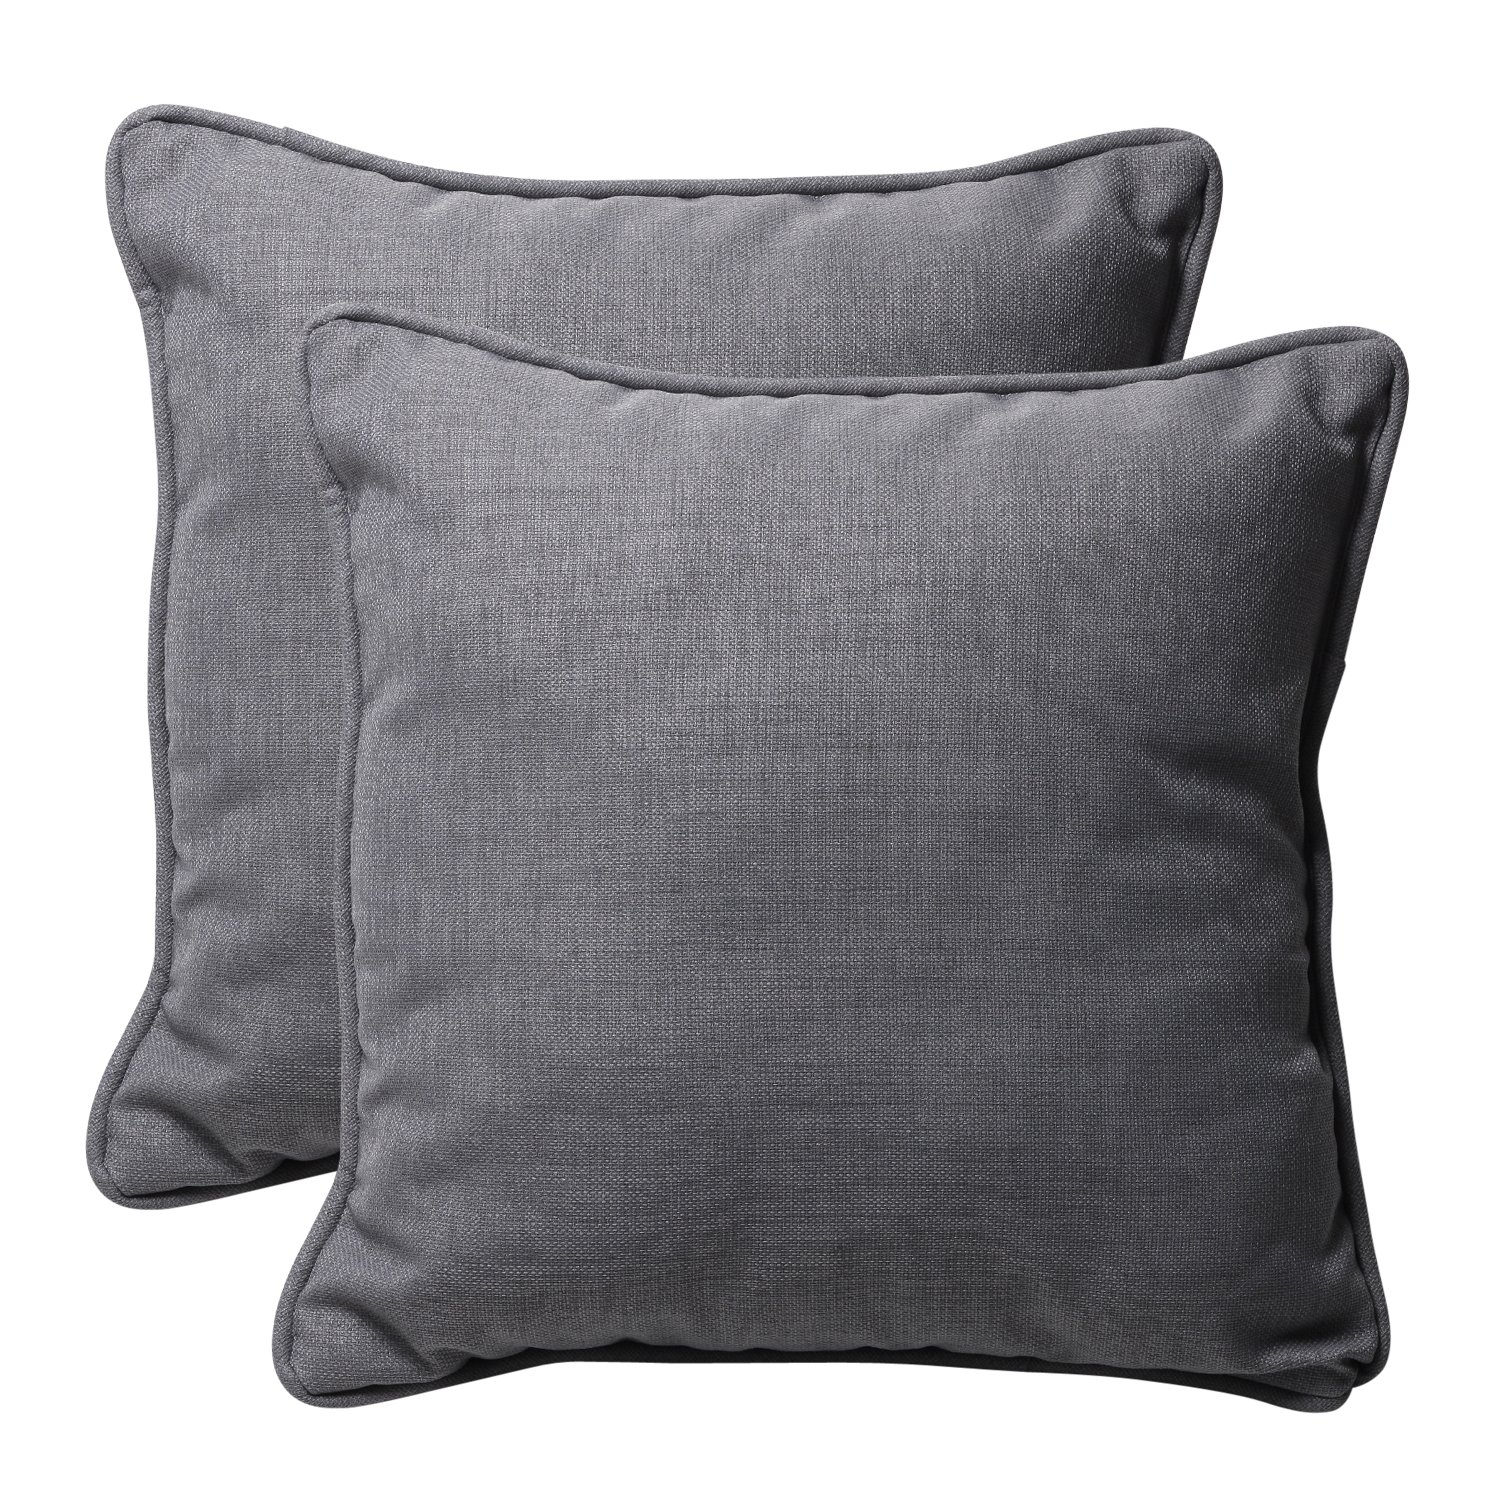 cushion market color pillow block gray geometric il etsy lumbar pillows graphic